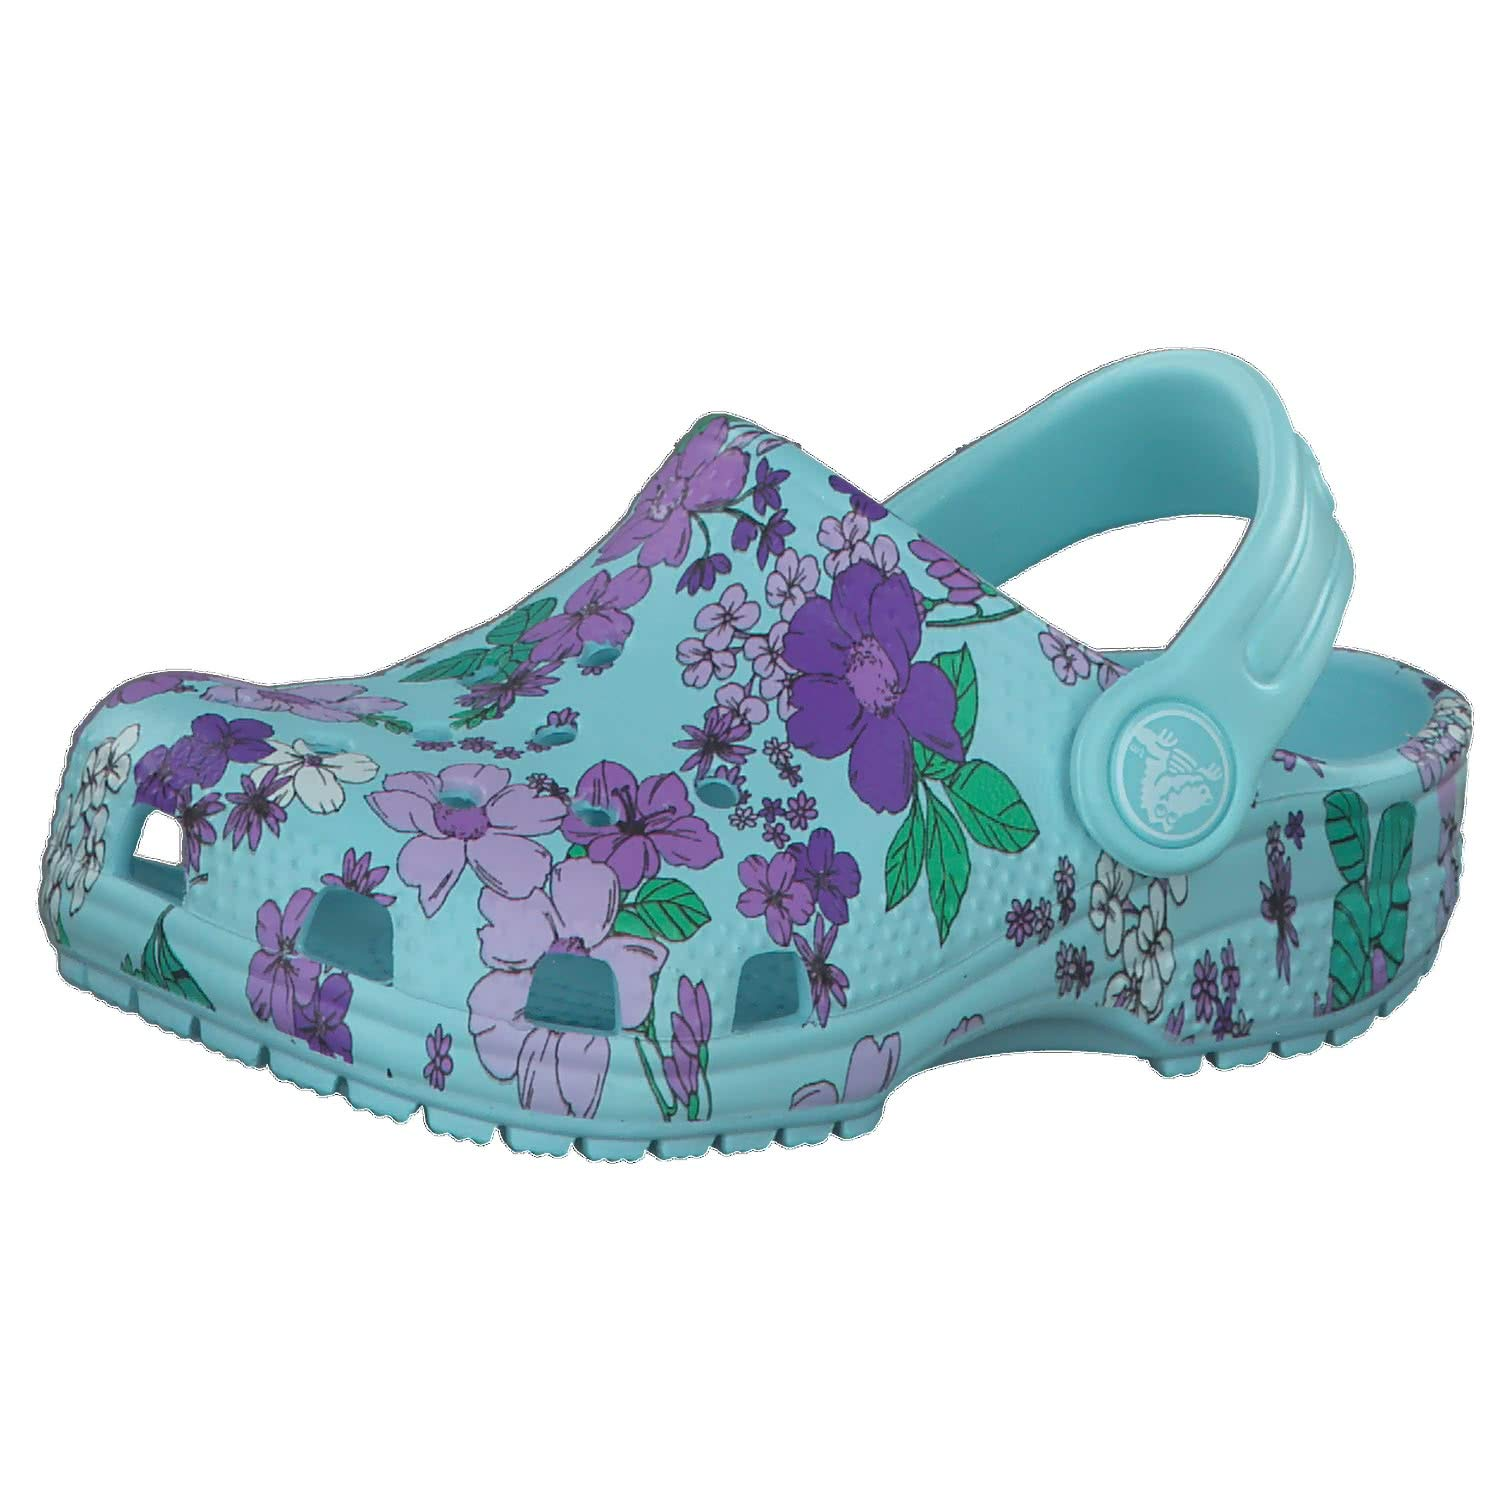 Crocs Kid's Classic Floral Clog Water Shoe for Toddlers Slip on Girls' Sandal